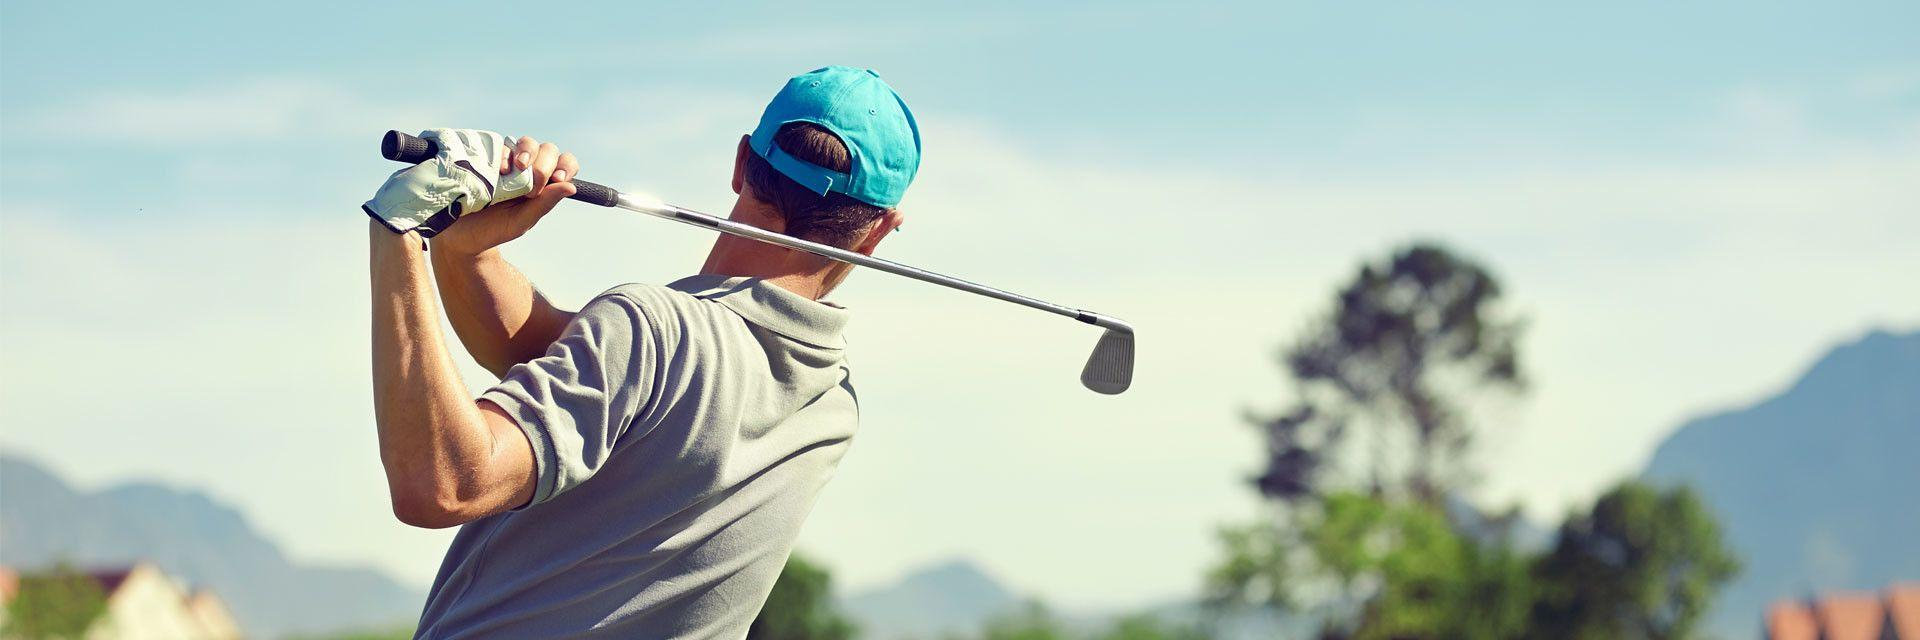 Don't Let Shoulder Pain Hurt Your Handicap: Rotator Cuff Tendonitis